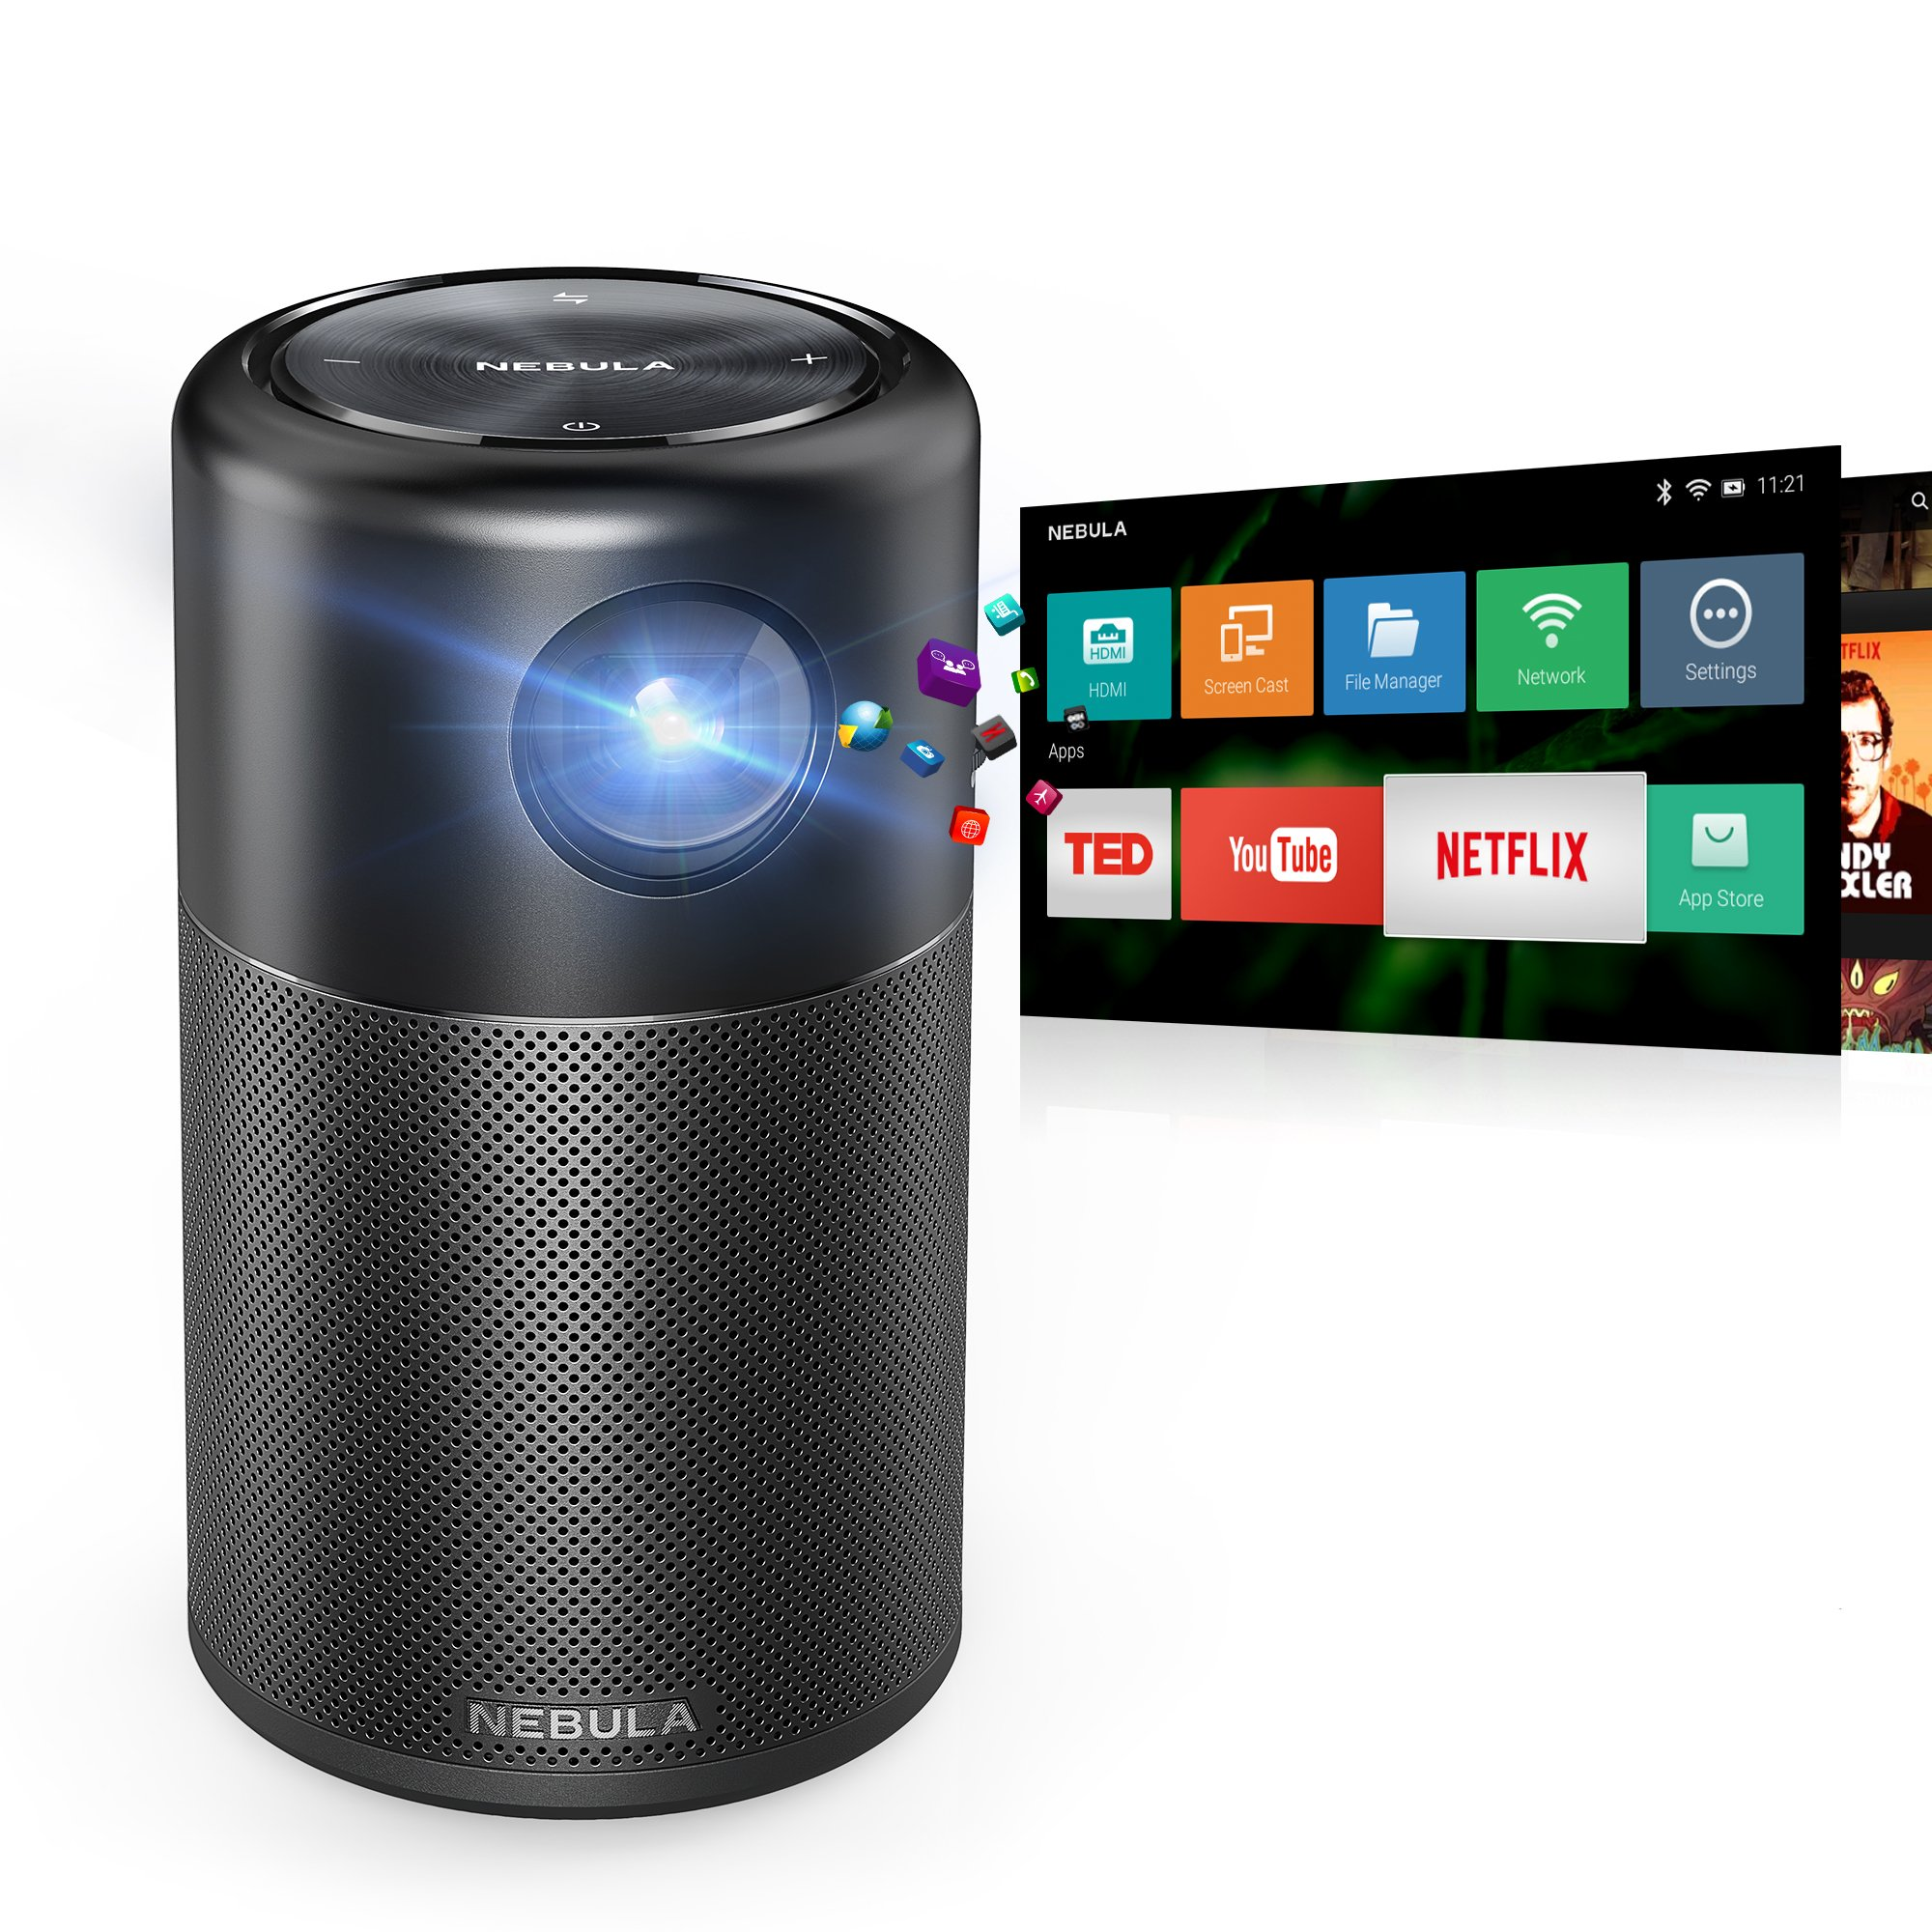 Nebula Capsule Smart Pico Projector, by Anker, Portable 100 ANSI lm High-Contrast Pocket Cinema with Wi-Fi, DLP, 360° Speaker, 100'' picture, Android 7.1, 4-Hour Video Playtime, and App